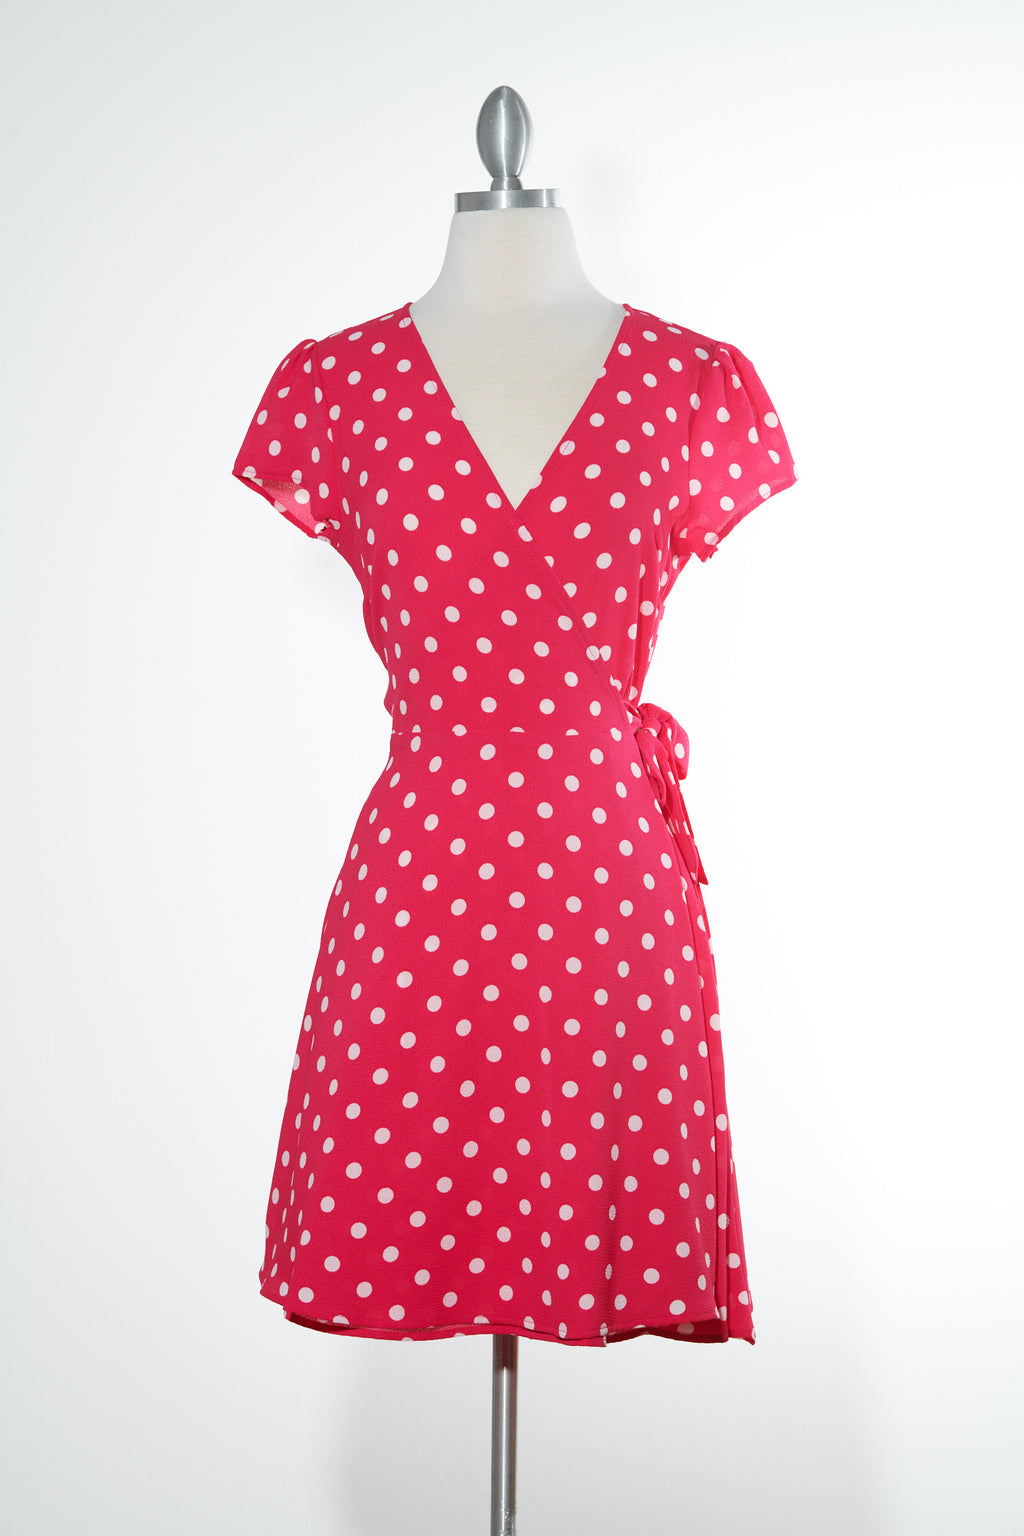 Strawberry Shortcake Wrap Dress